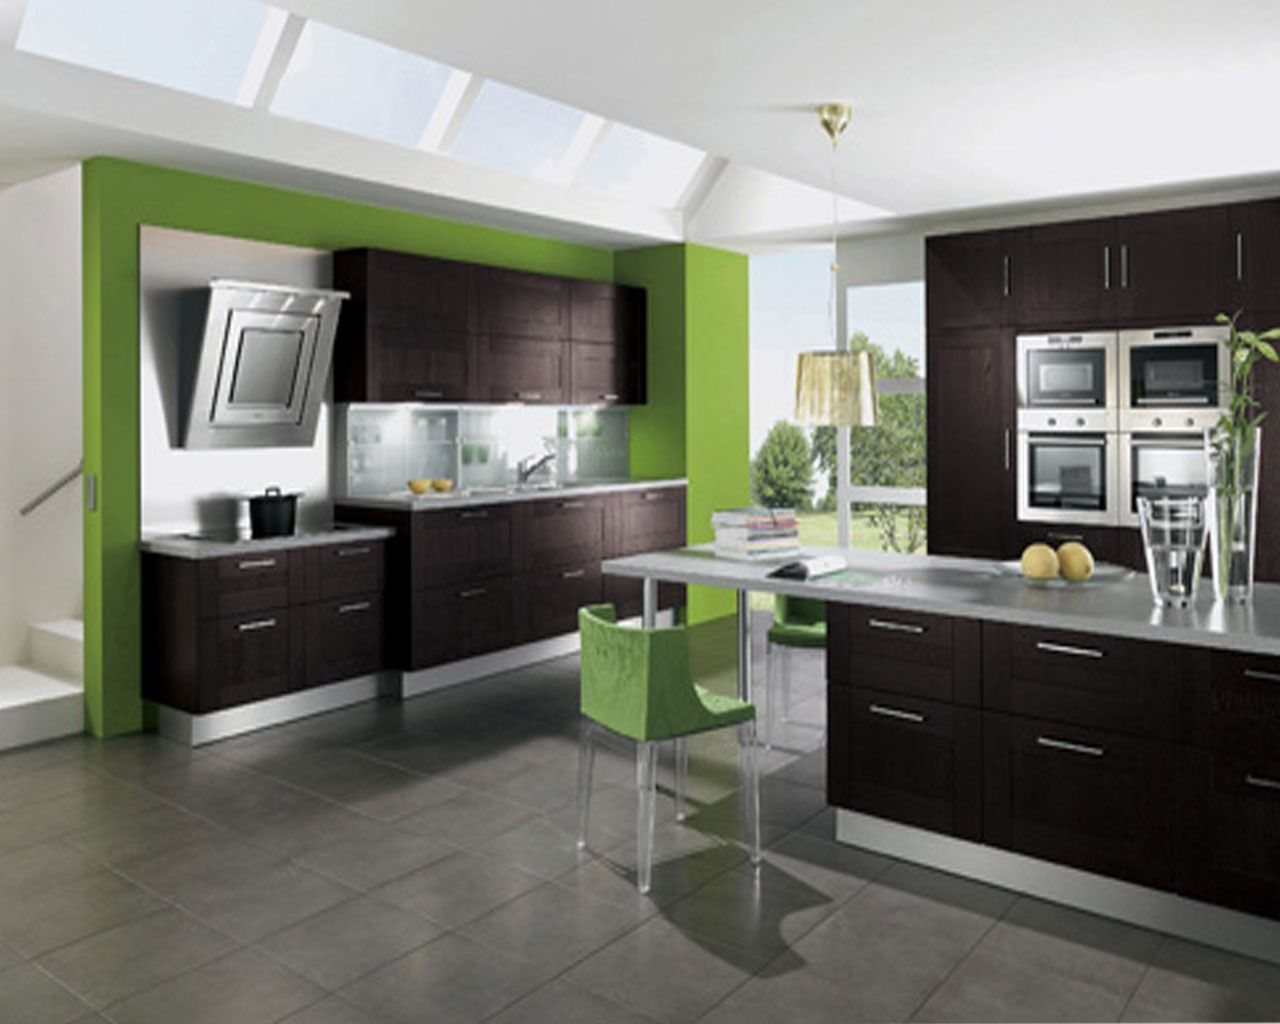 Home Kitchen Ideas The Best Kitchen Design Idea Green Brown Kitchen Ideas Design